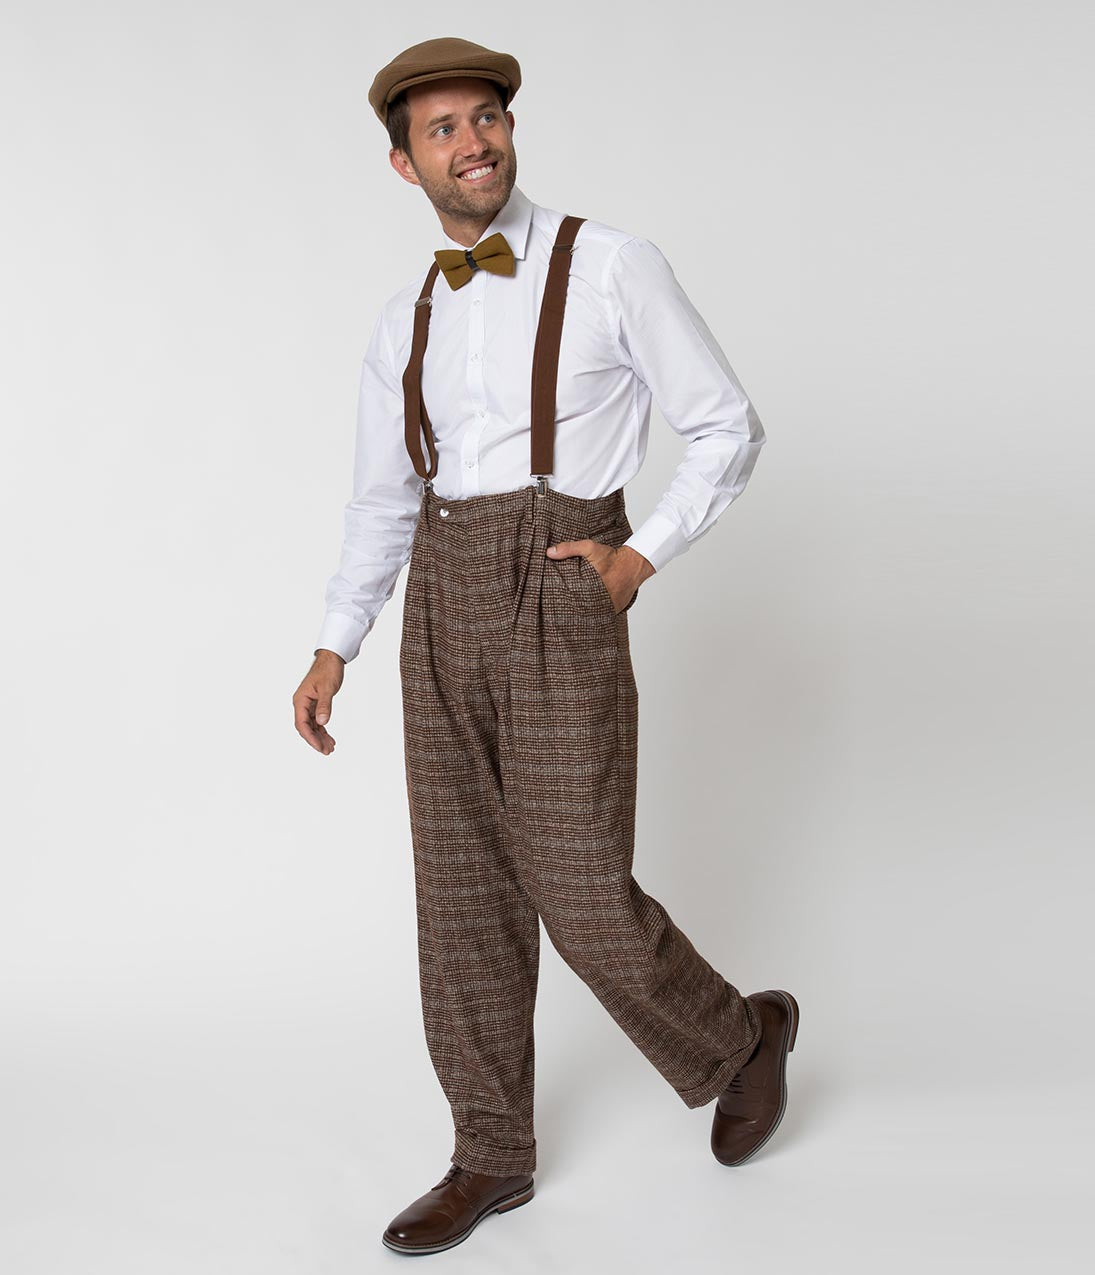 Retro Clothing for Men | Vintage Men's Fashion Unique Vintage 1930S Style Brown Checkered Woven Men Pants $88.00 AT vintagedancer.com